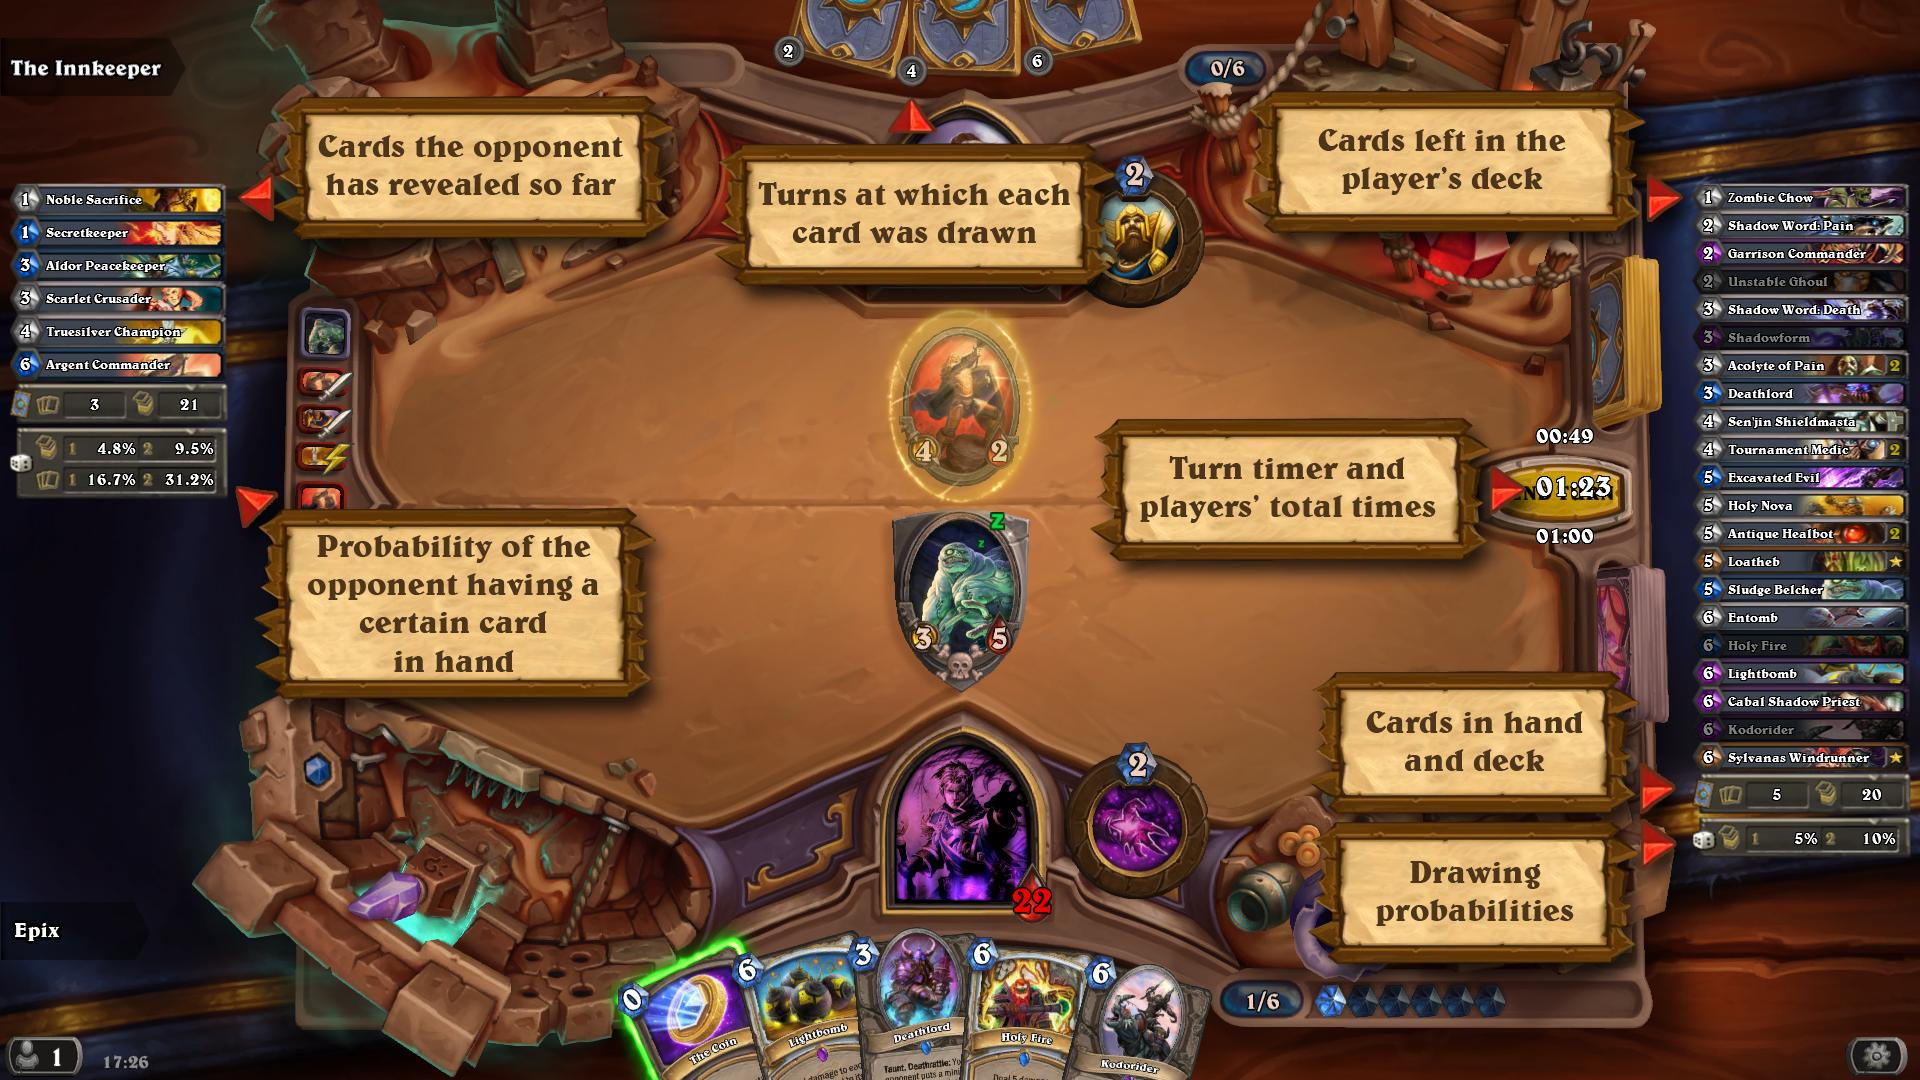 Hearthstone deck tracker, showing how to calculate cards and drawing probabilities.